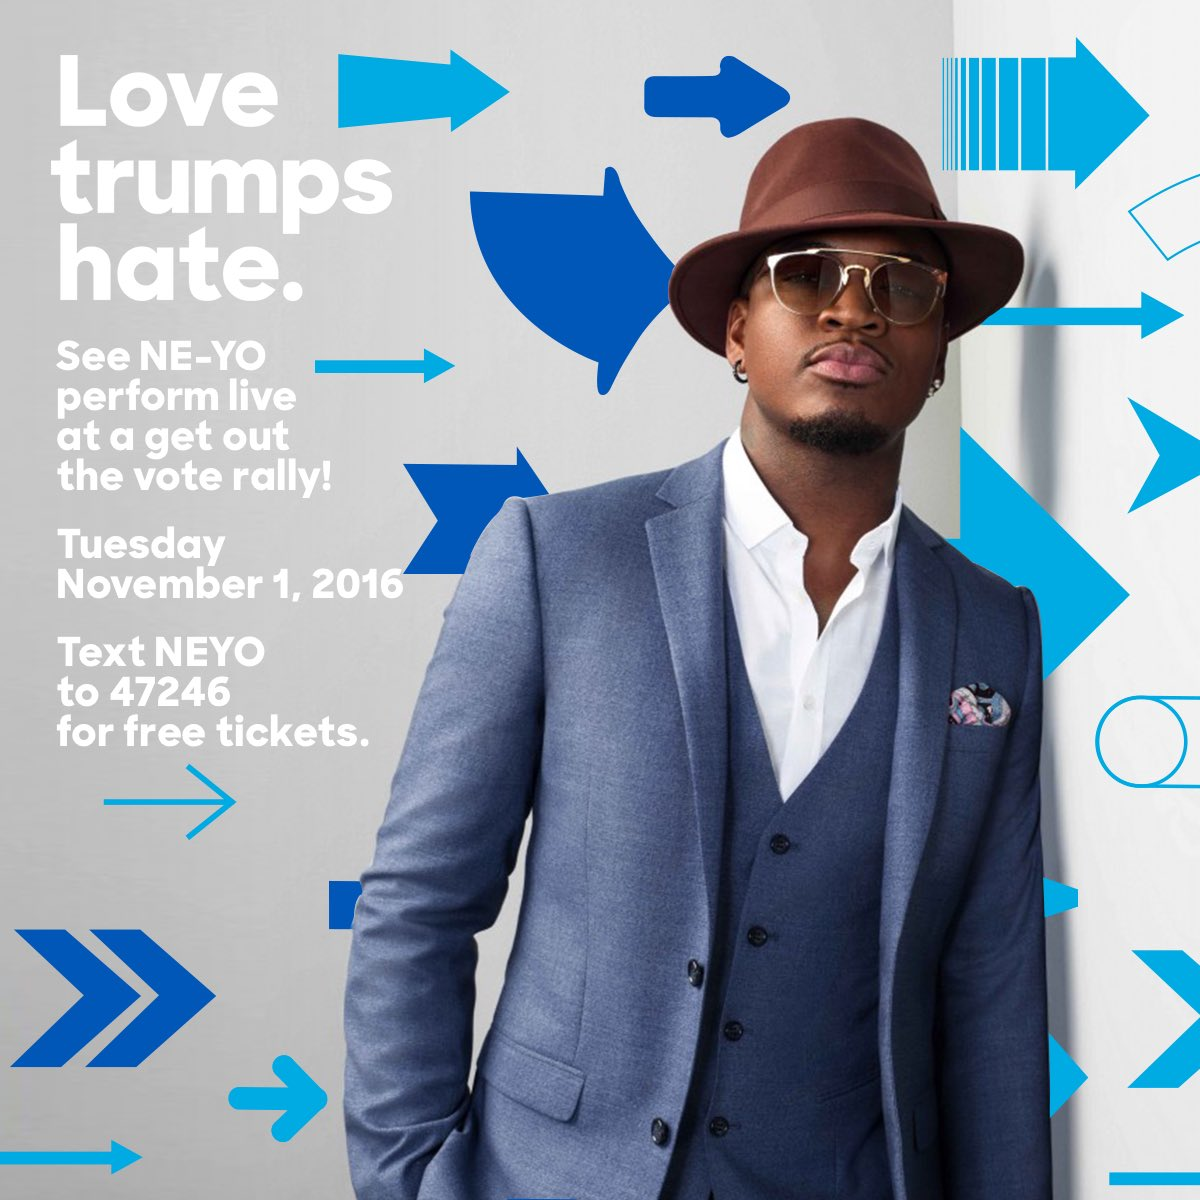 Want FREE tickets to my special performance to get out the vote? Text NEYO to 47246! #ImWithHer https://t.co/6wXlkJWjpp